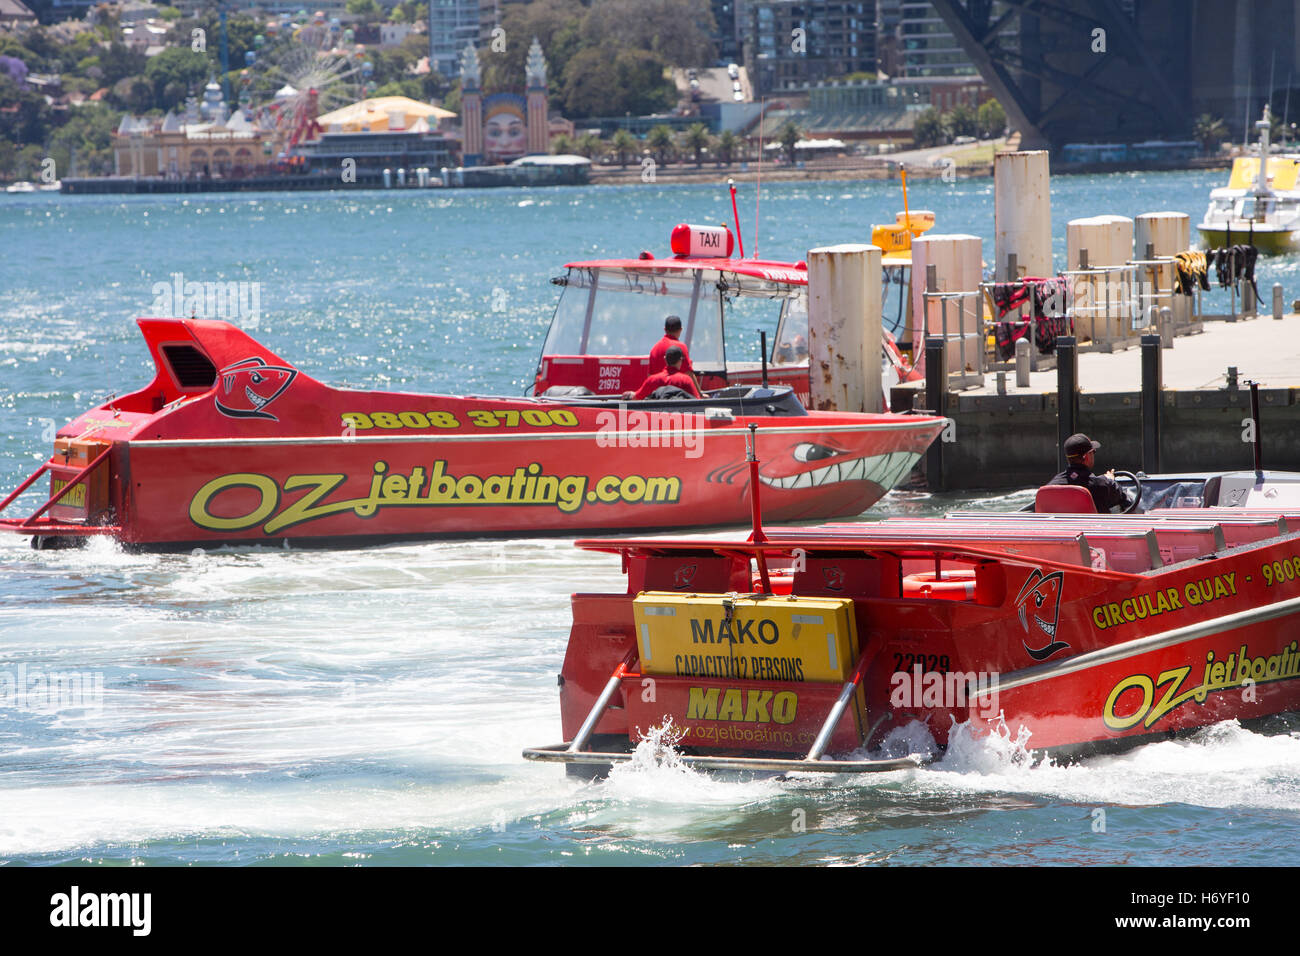 Oz jet speed jetboating on Sydney harbour at circular quay,Sydney,Australia - Stock Image